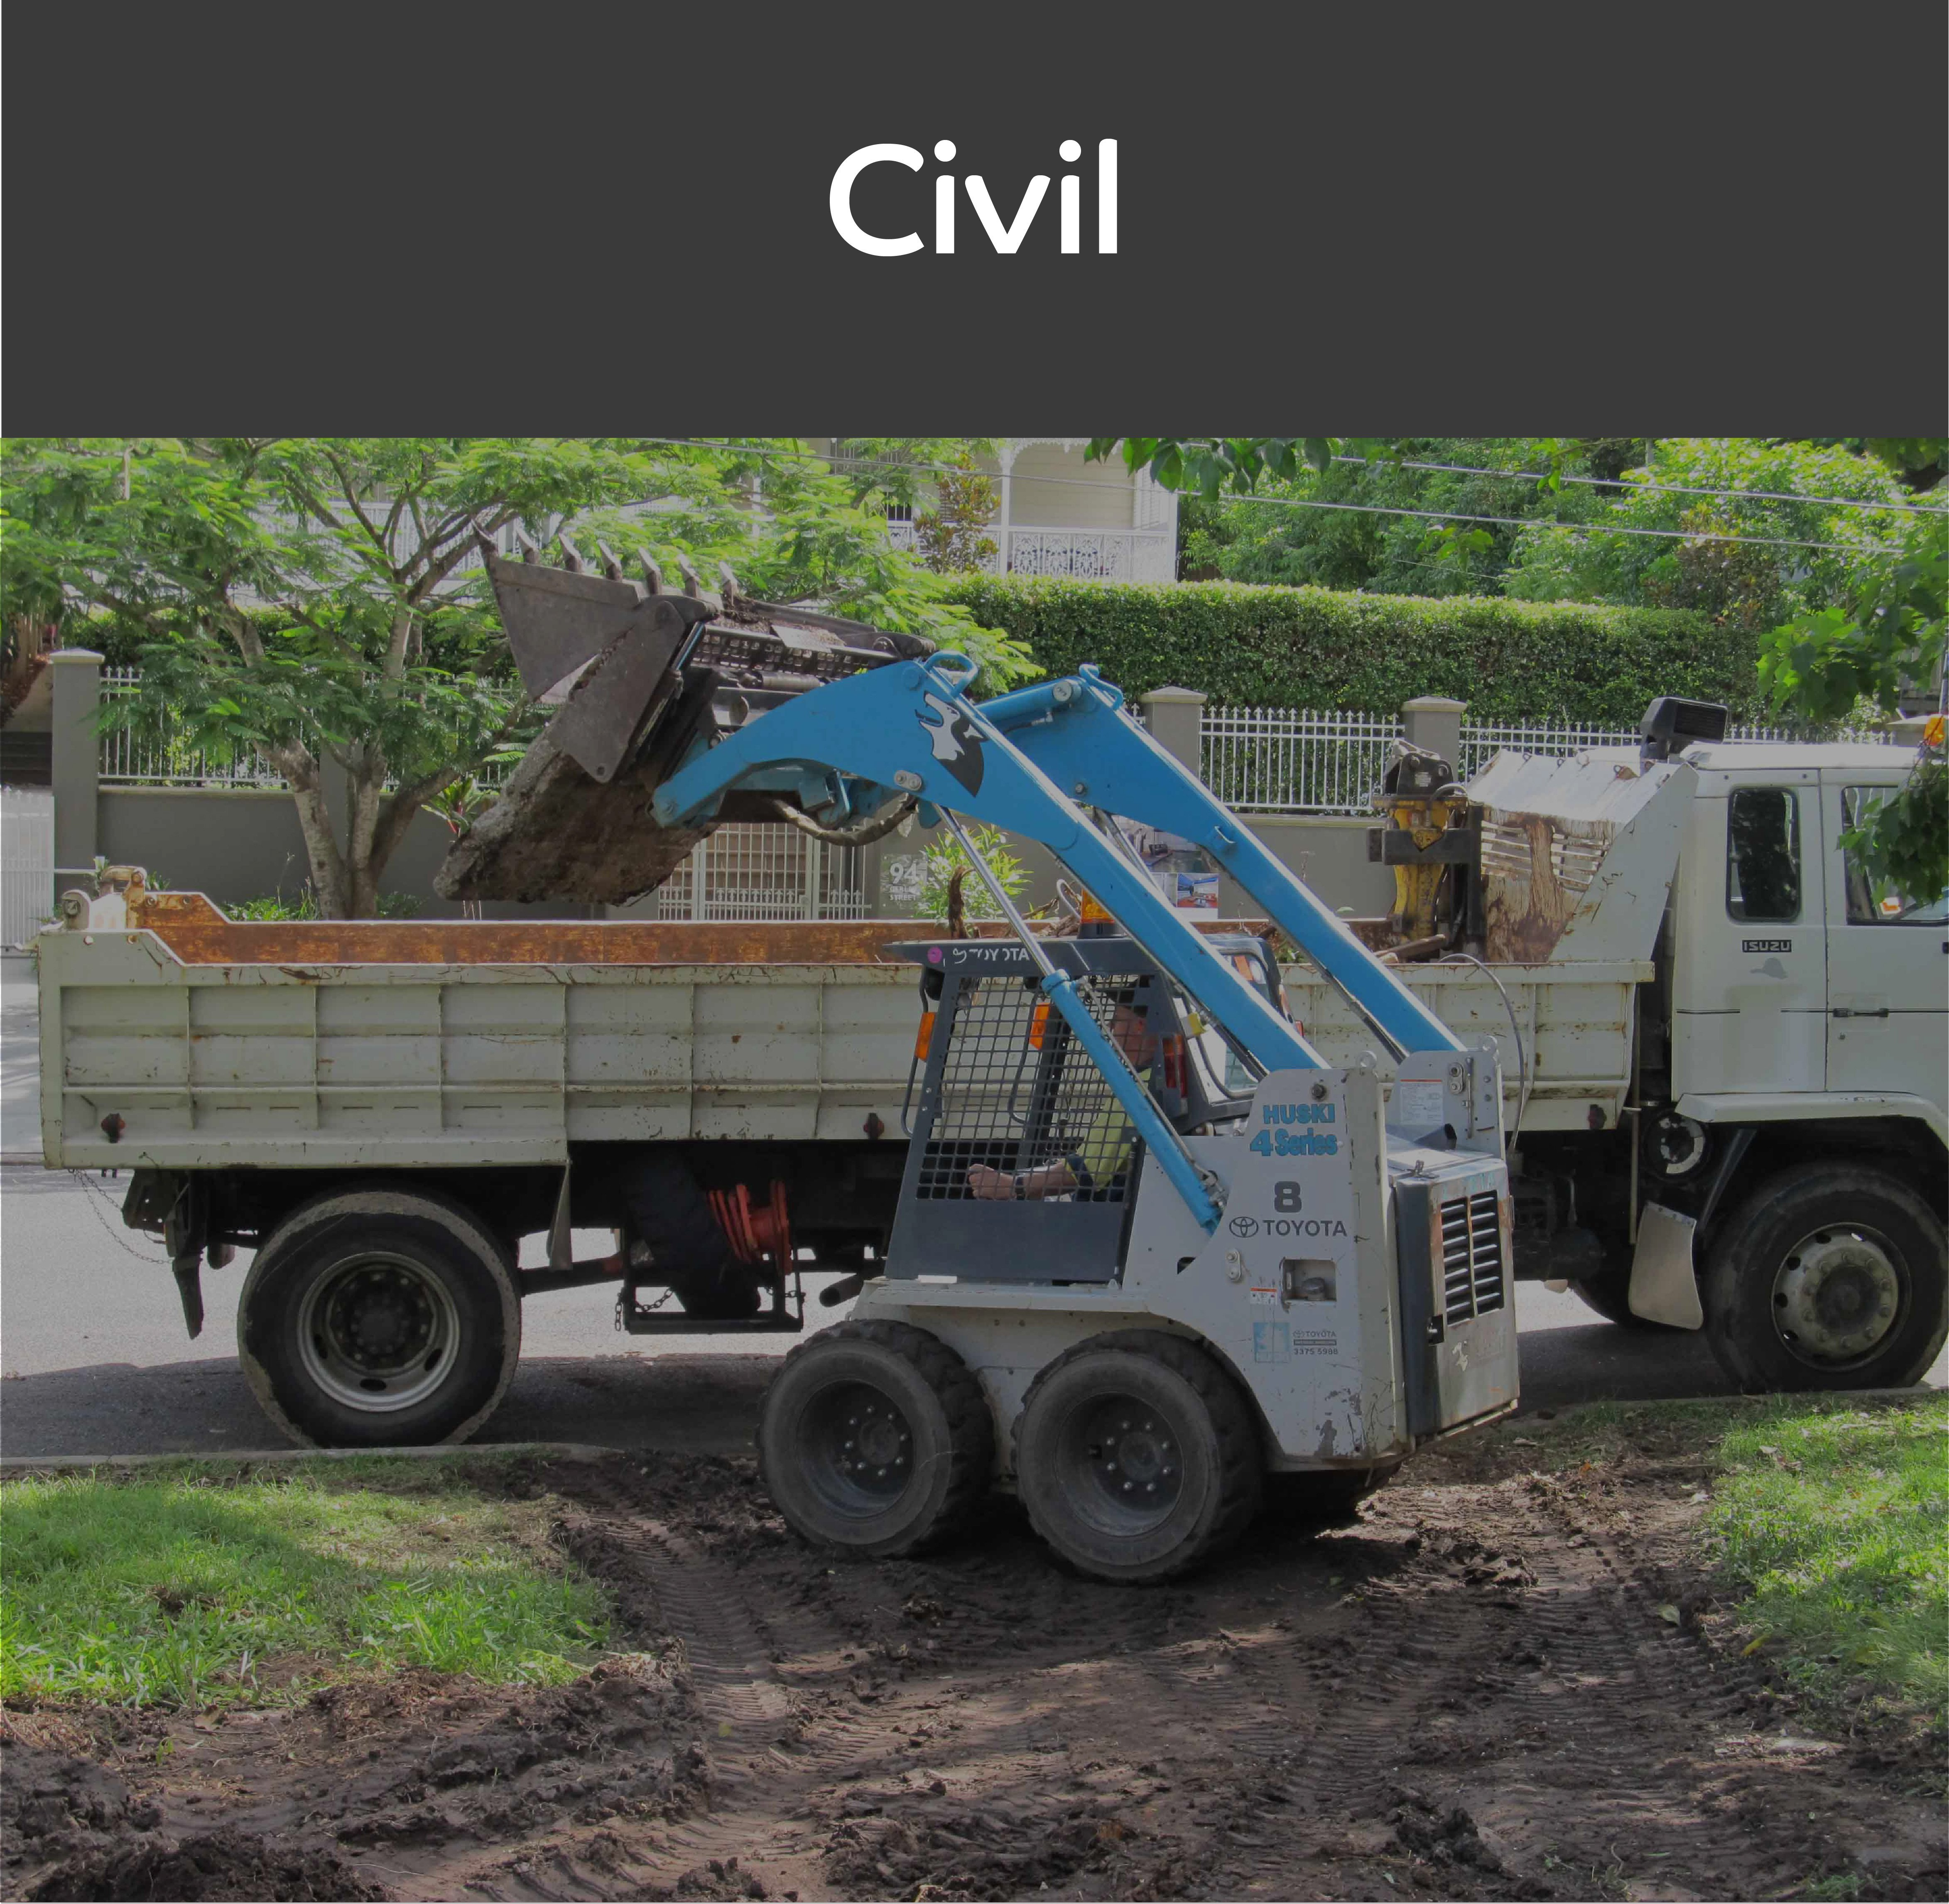 A1 Dusty Earthworks Civil Services Page Mobile